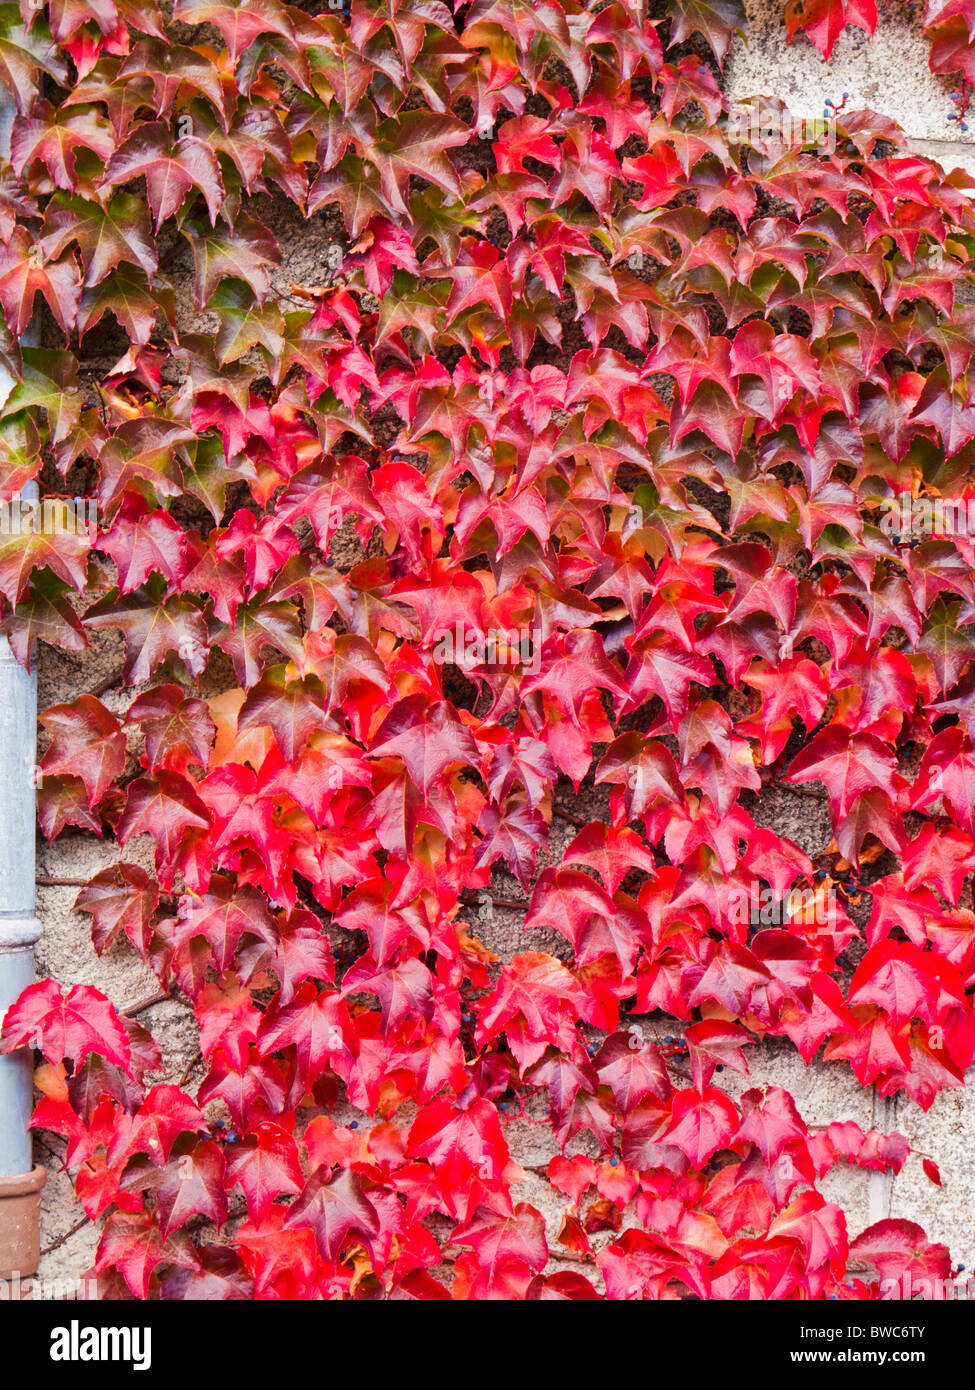 Red Ivy autumn leaves covering a wall - Stock Image